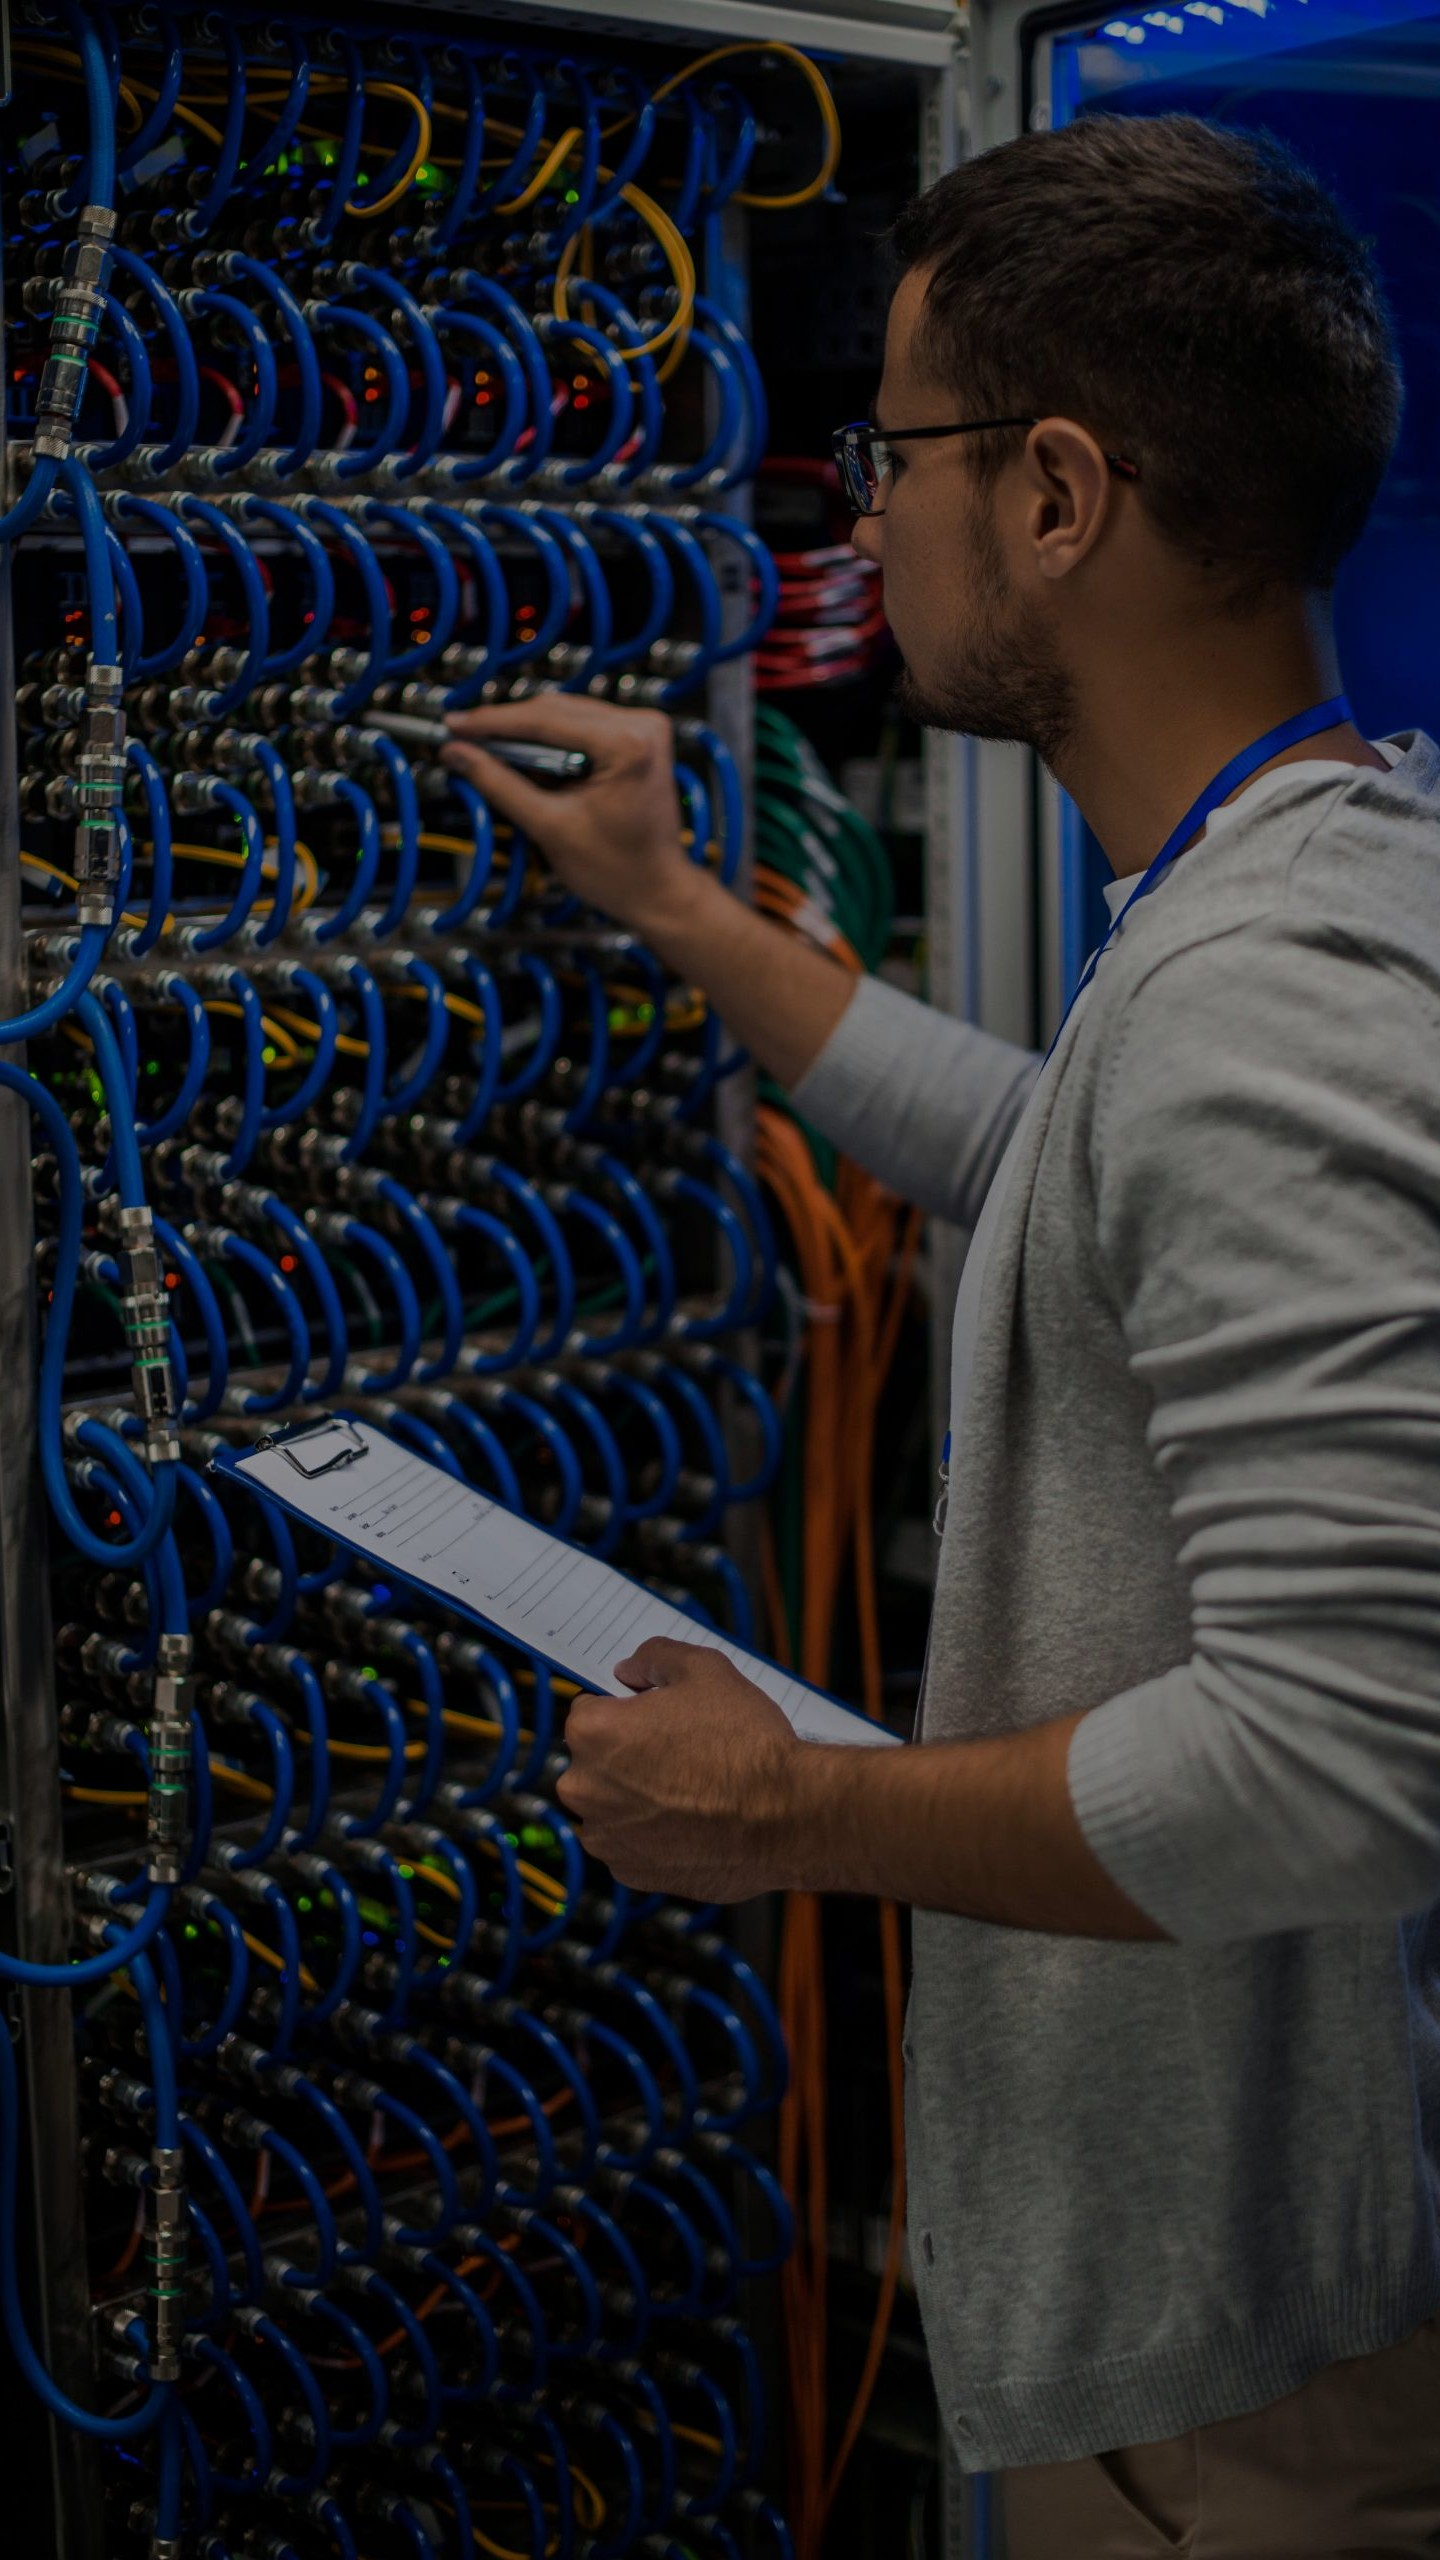 IT Specialist checking network security on a server in dallas